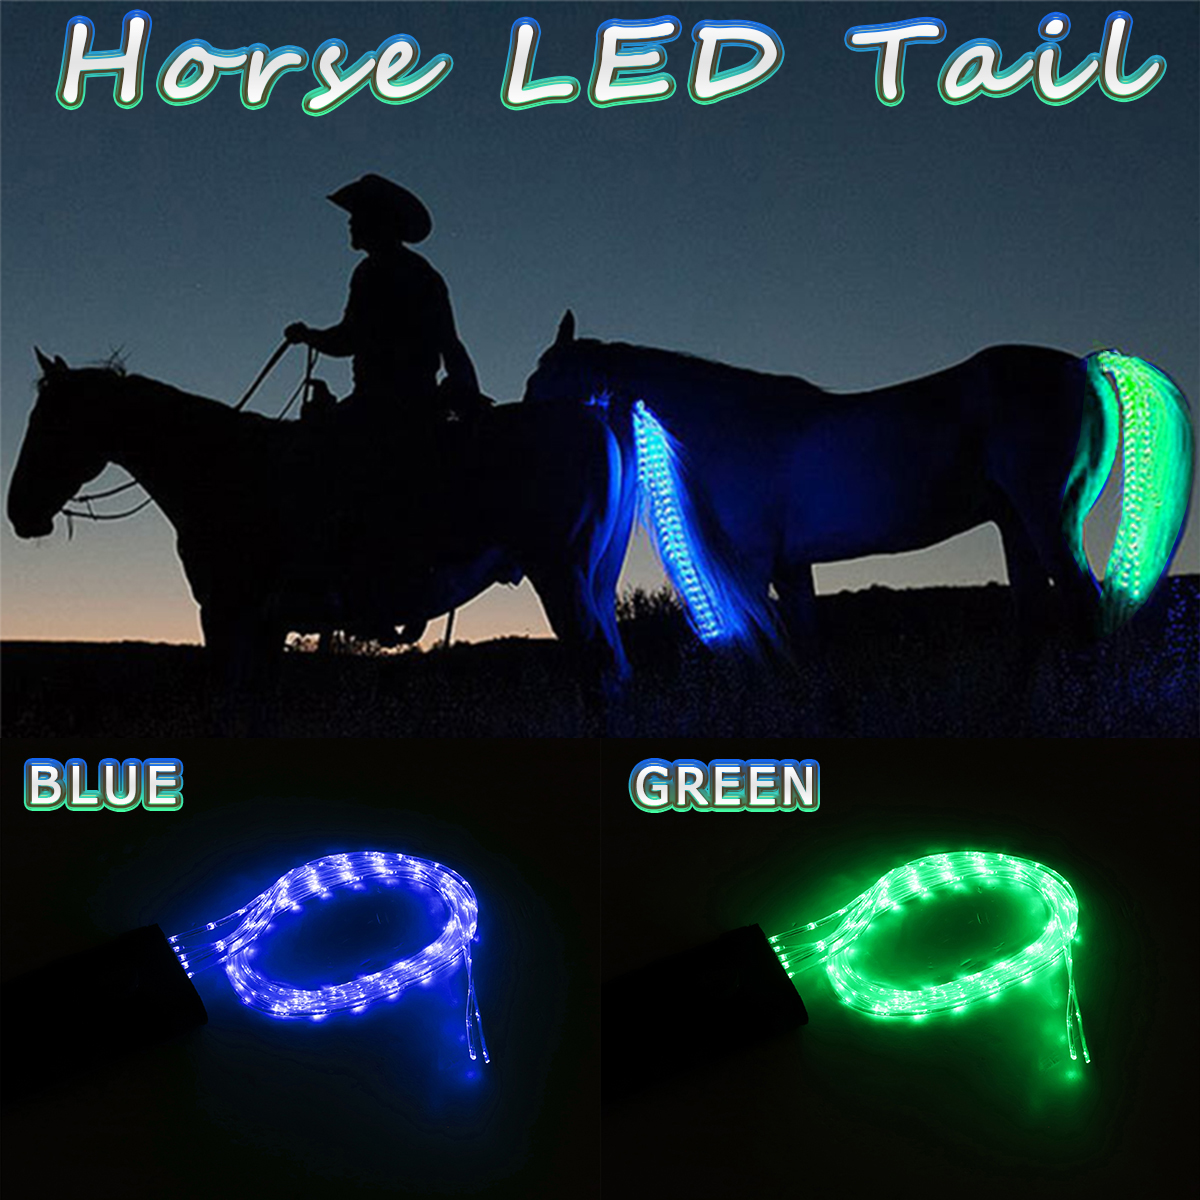 100cm Horse Tail Light USB Chargeable LED Camping Lamp Sports Horse Harness Equestrian Lantern